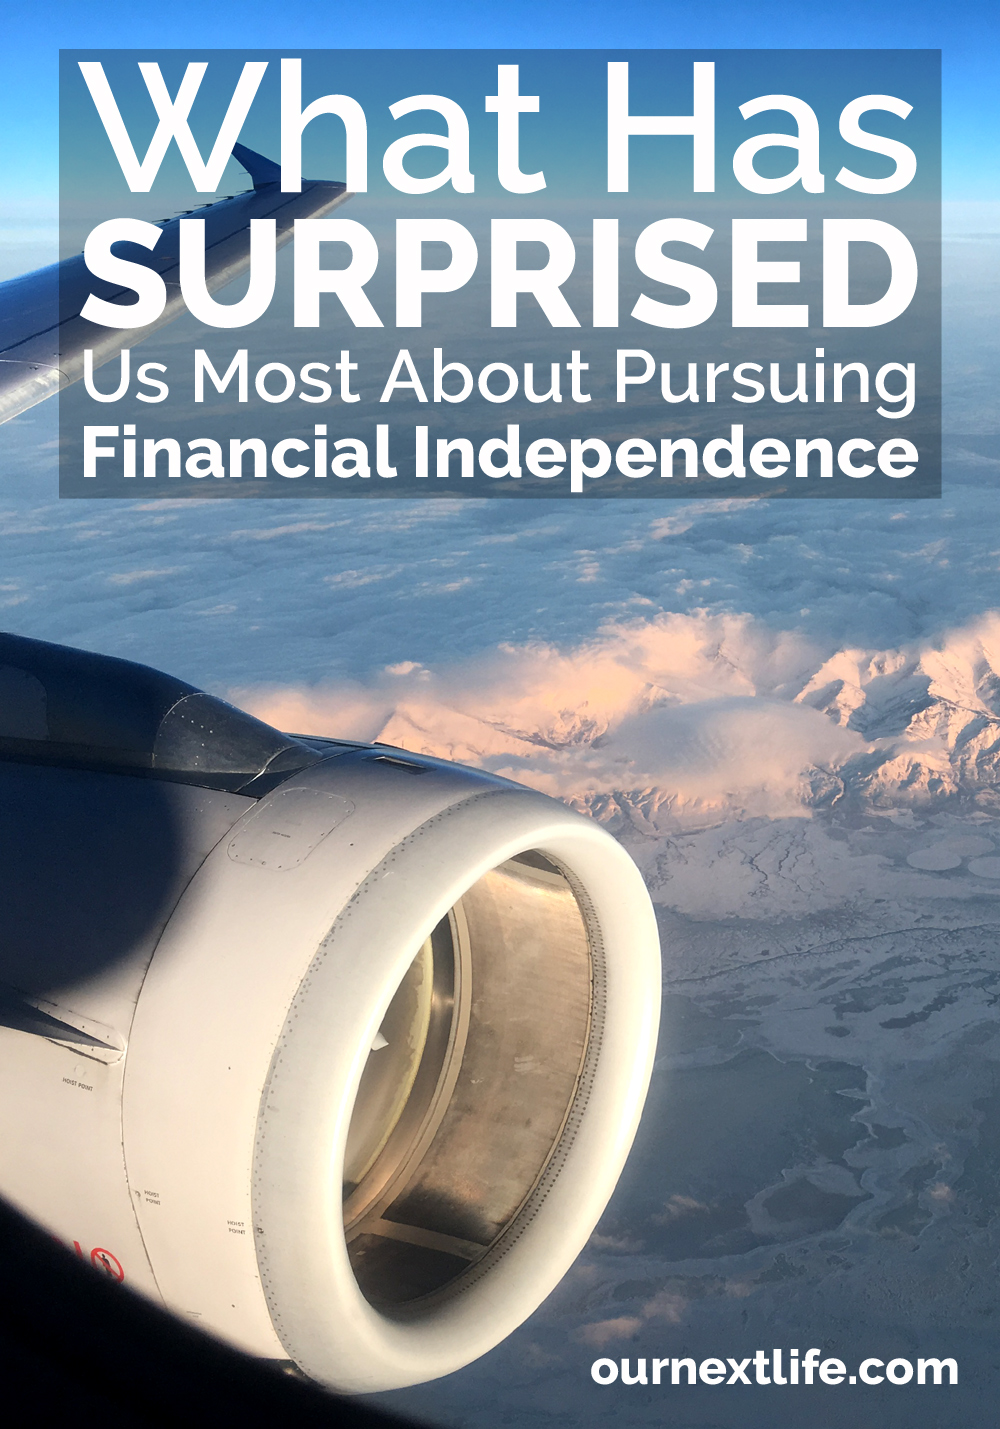 What has surprised us most about pursuing financial independence?